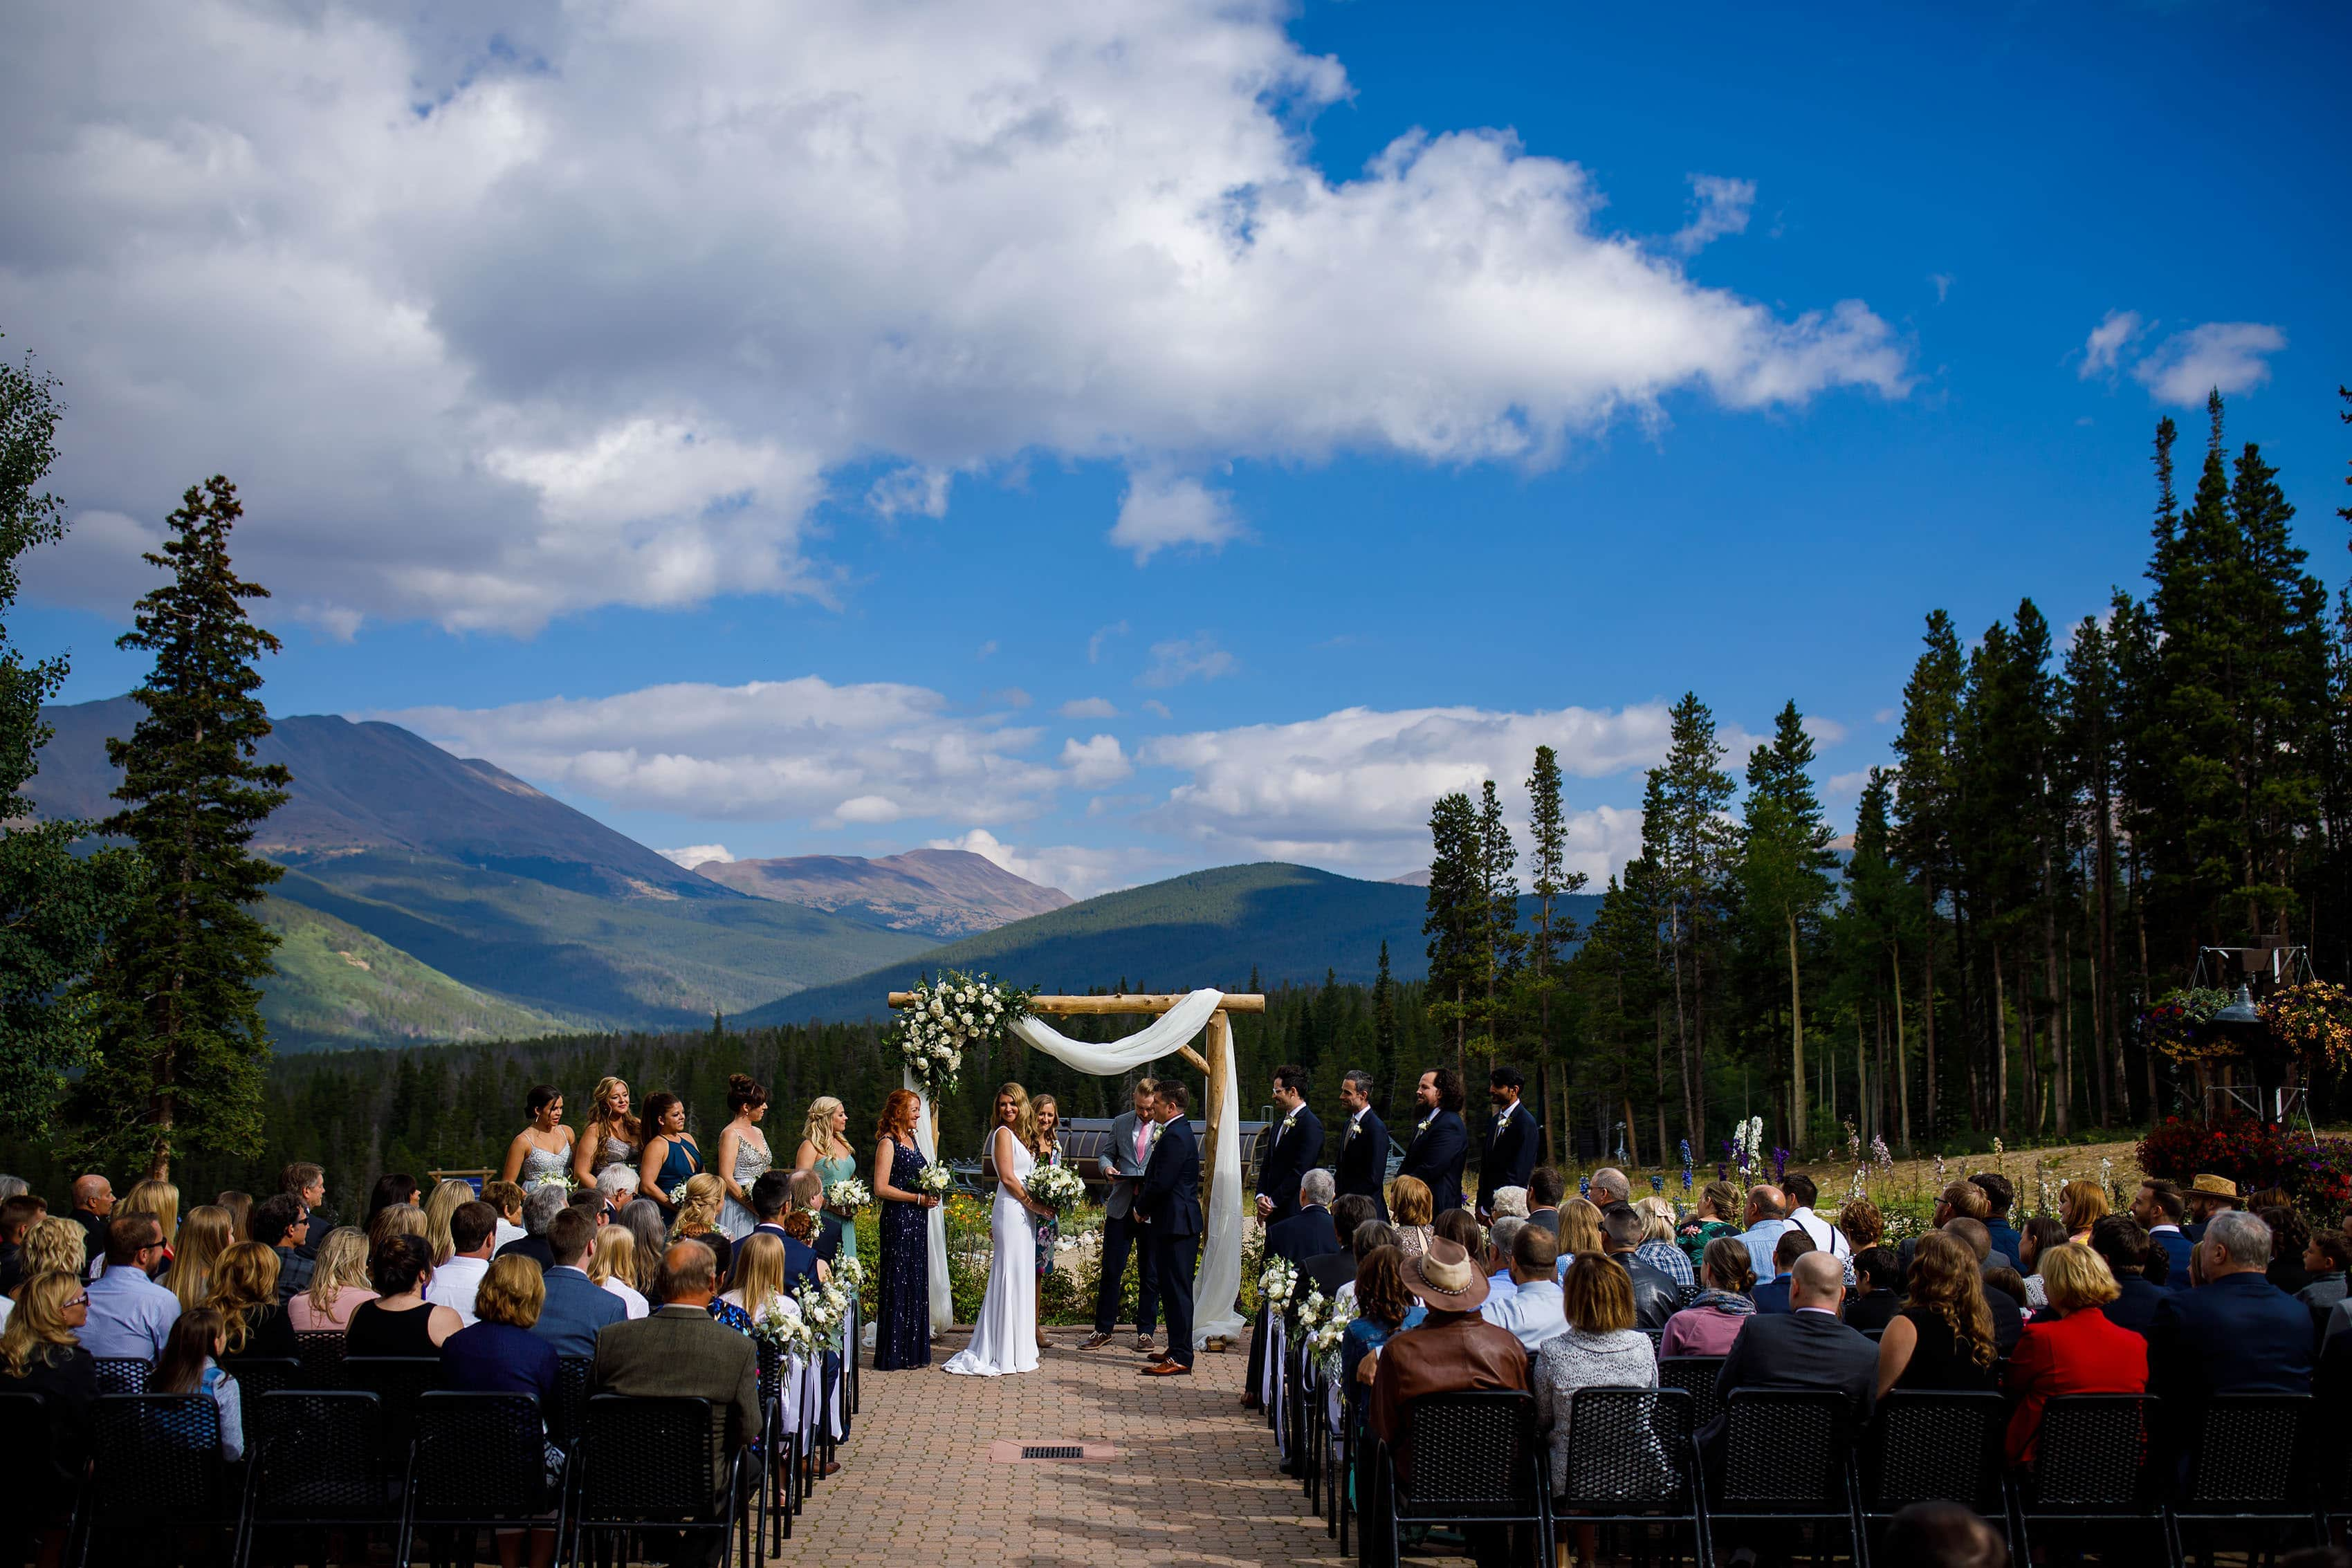 A summer bluebird ceremony at TenMile Station on Peak 9 at Breckenridge resort